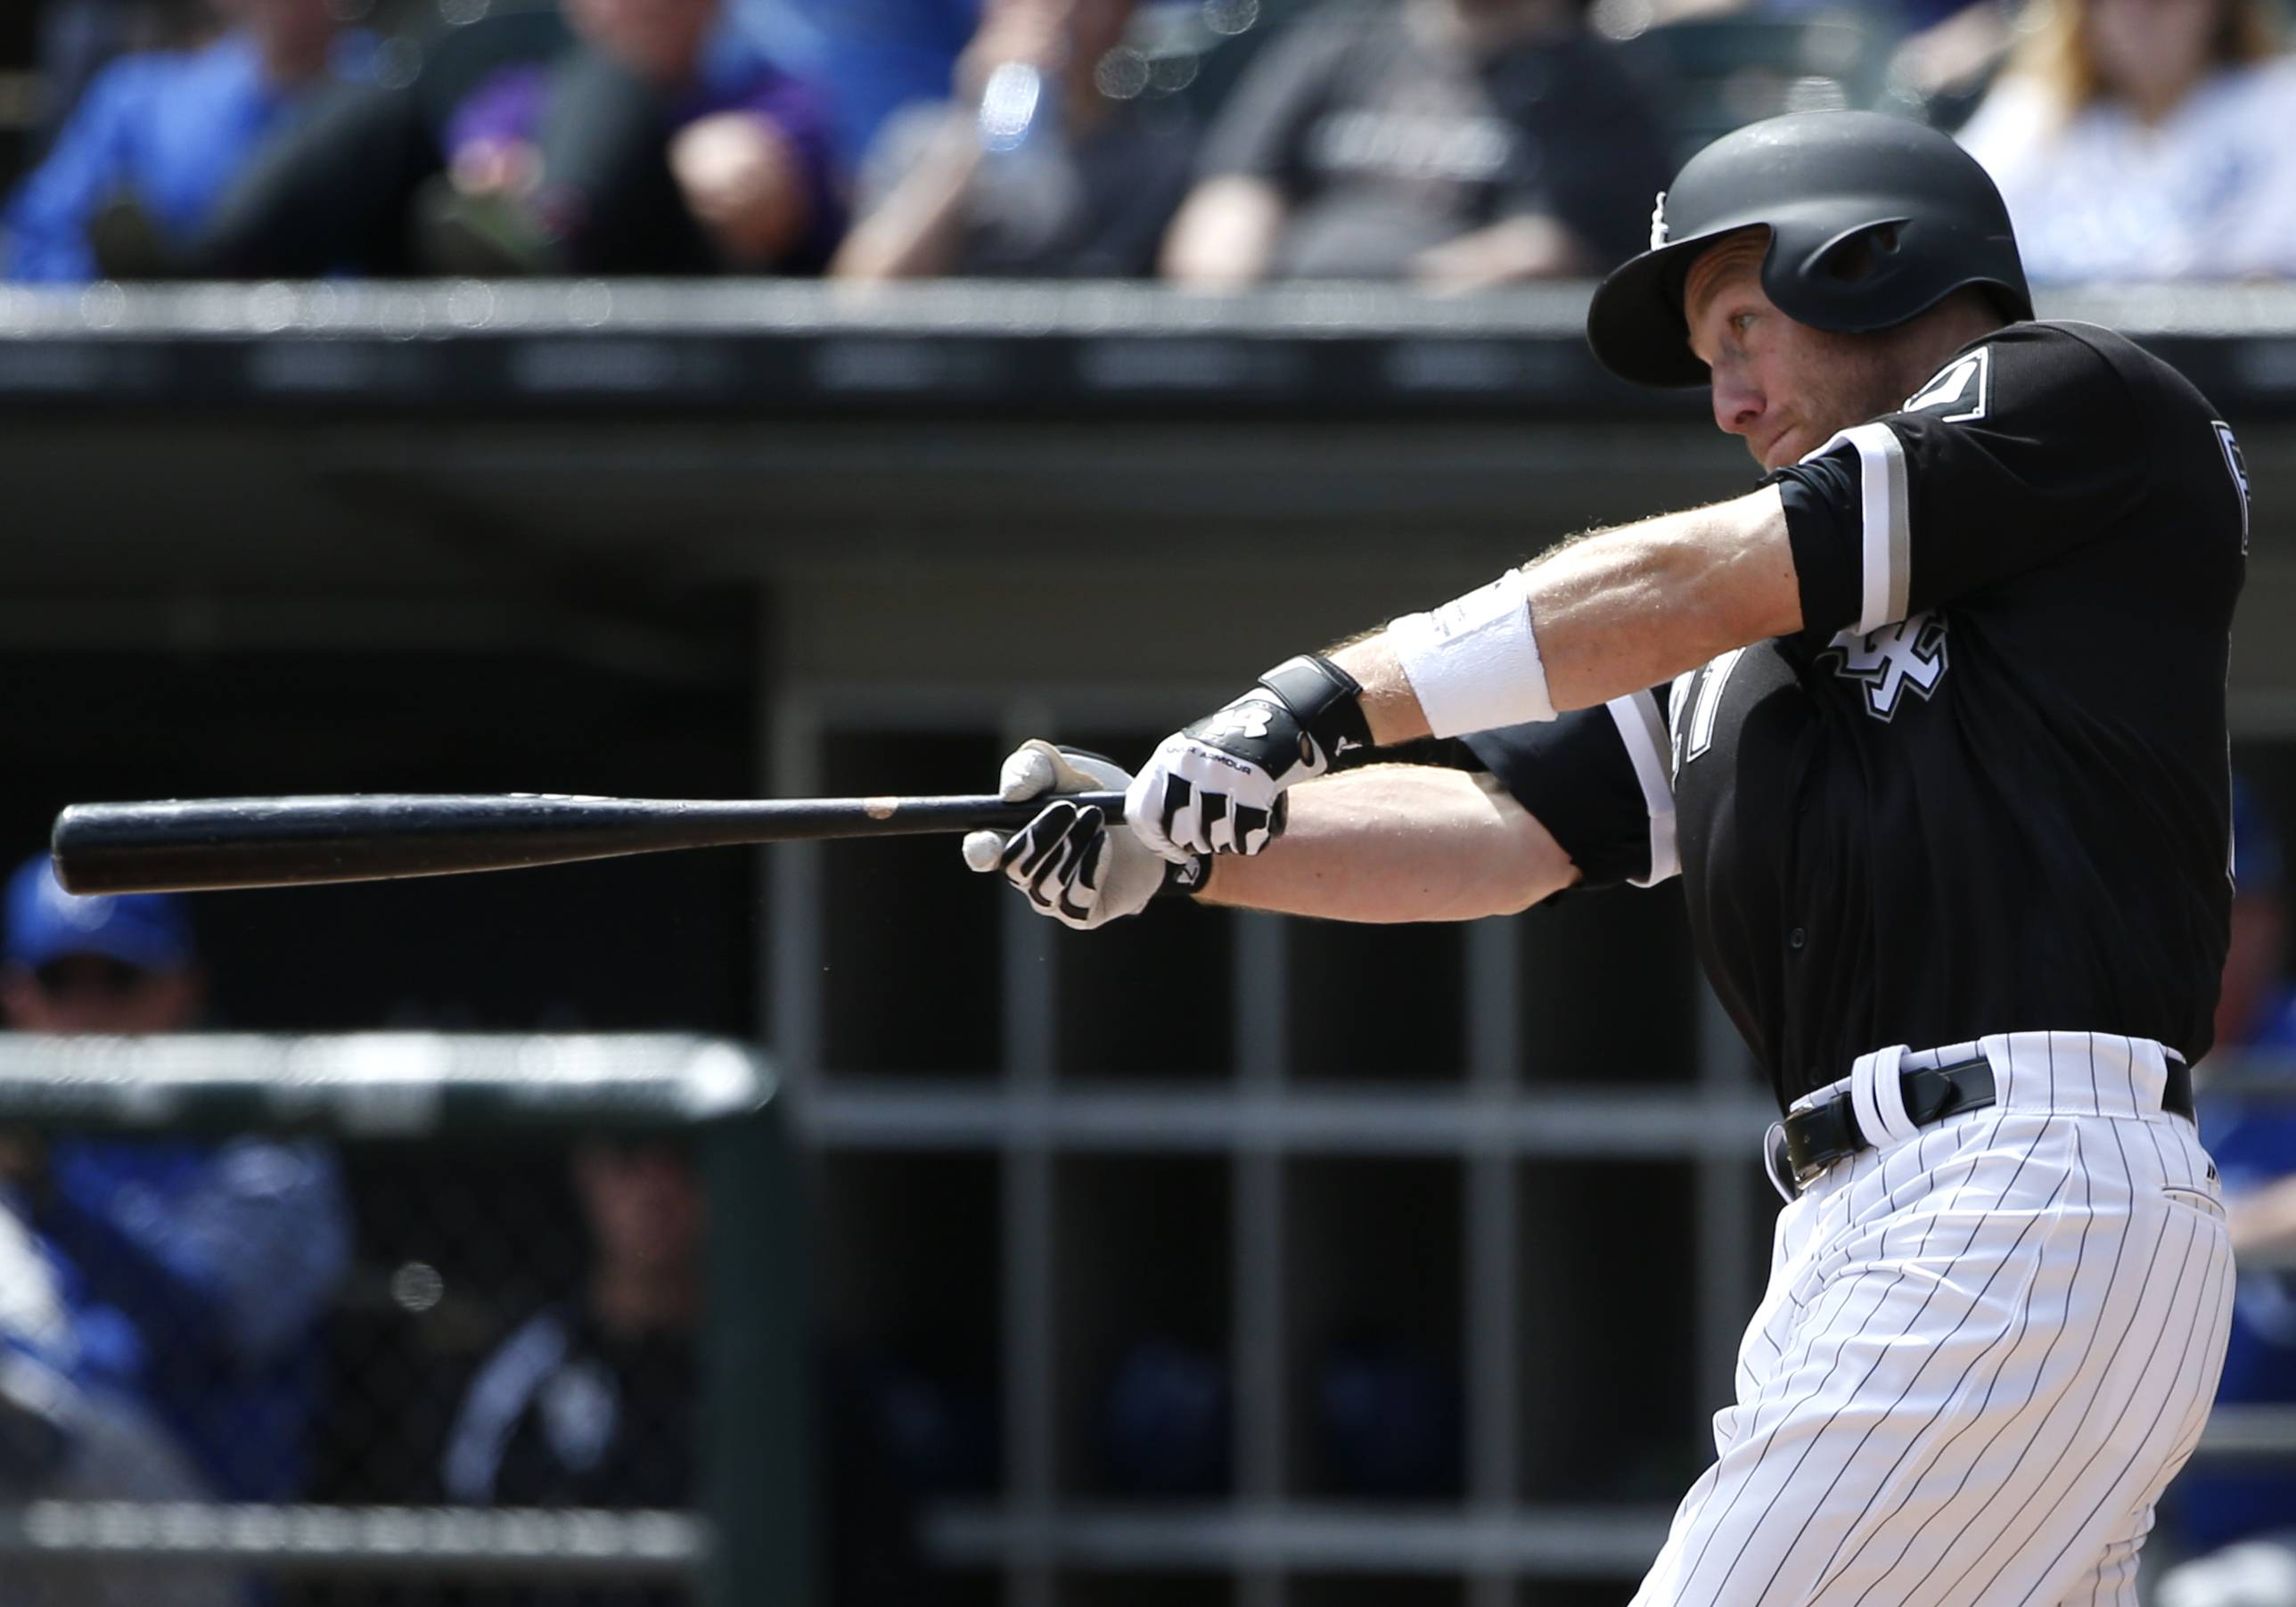 Todd Frazier has had various health issues since January. Now back to 100 percent, the Chicago White Sox's third baseman had 4 doubles and 6 RBI in the three-game sweep of Kansas City.